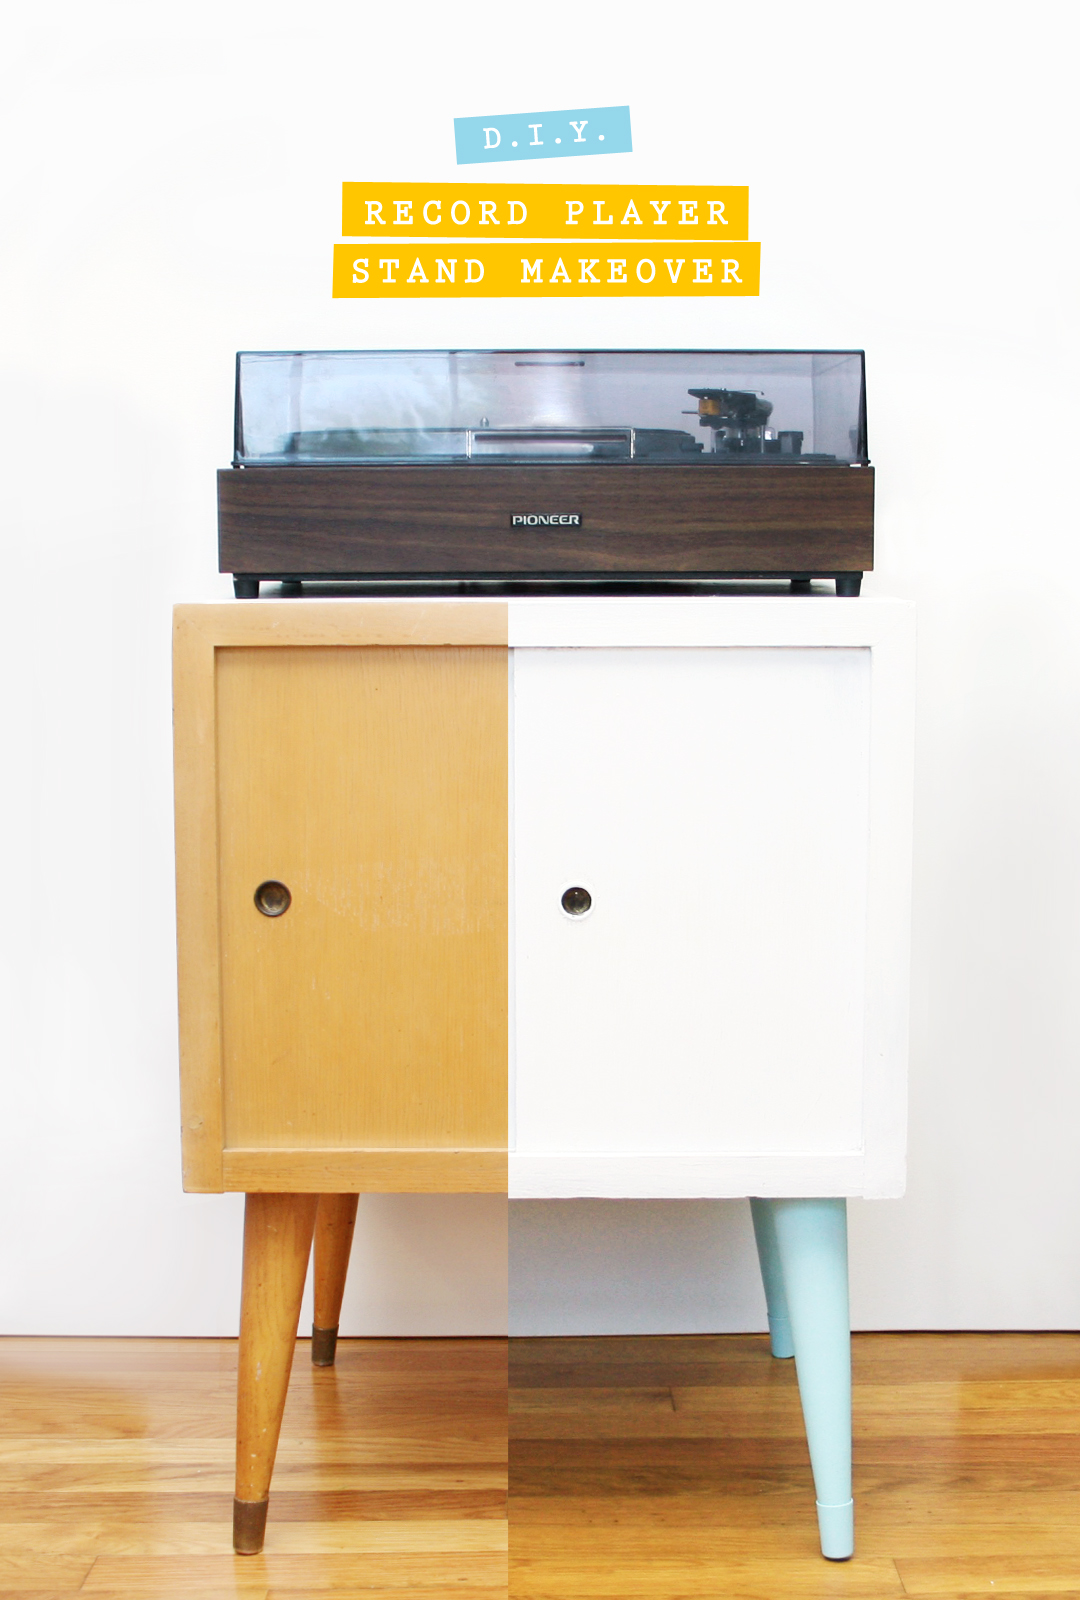 Diy Record Player Stand Makeover